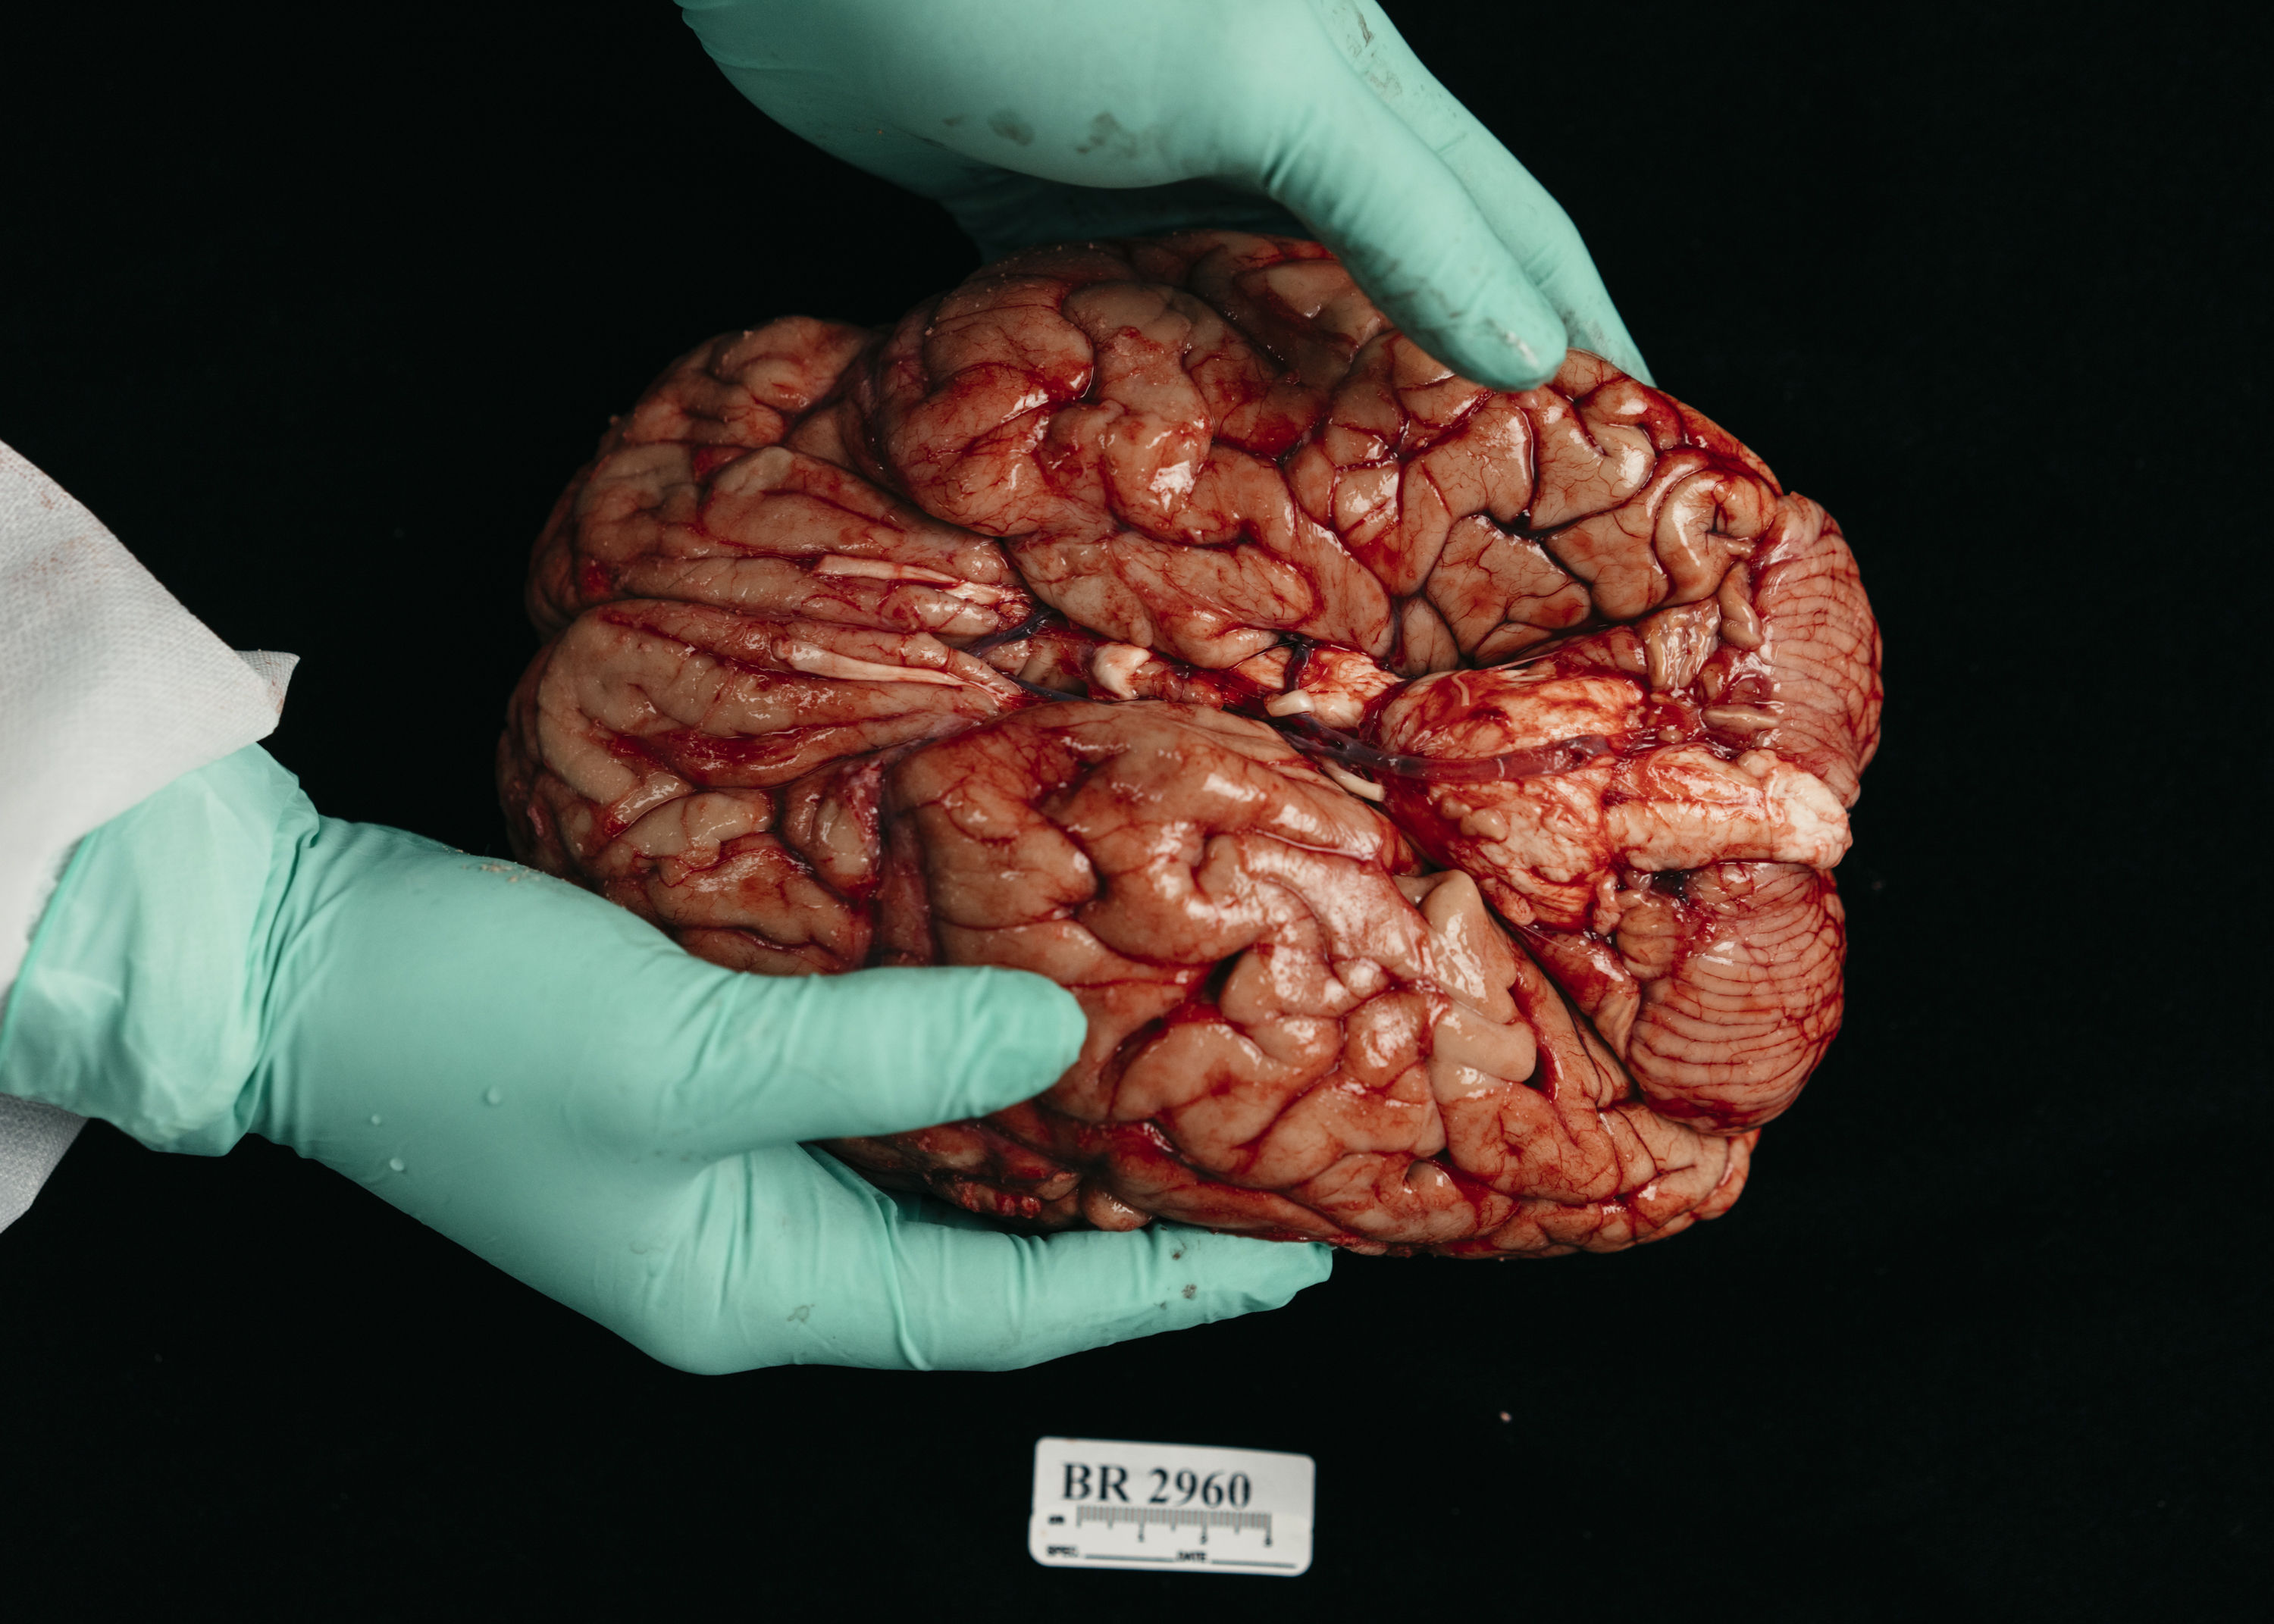 Mental Health Research Needs More People To Donate Their Brains Tonic